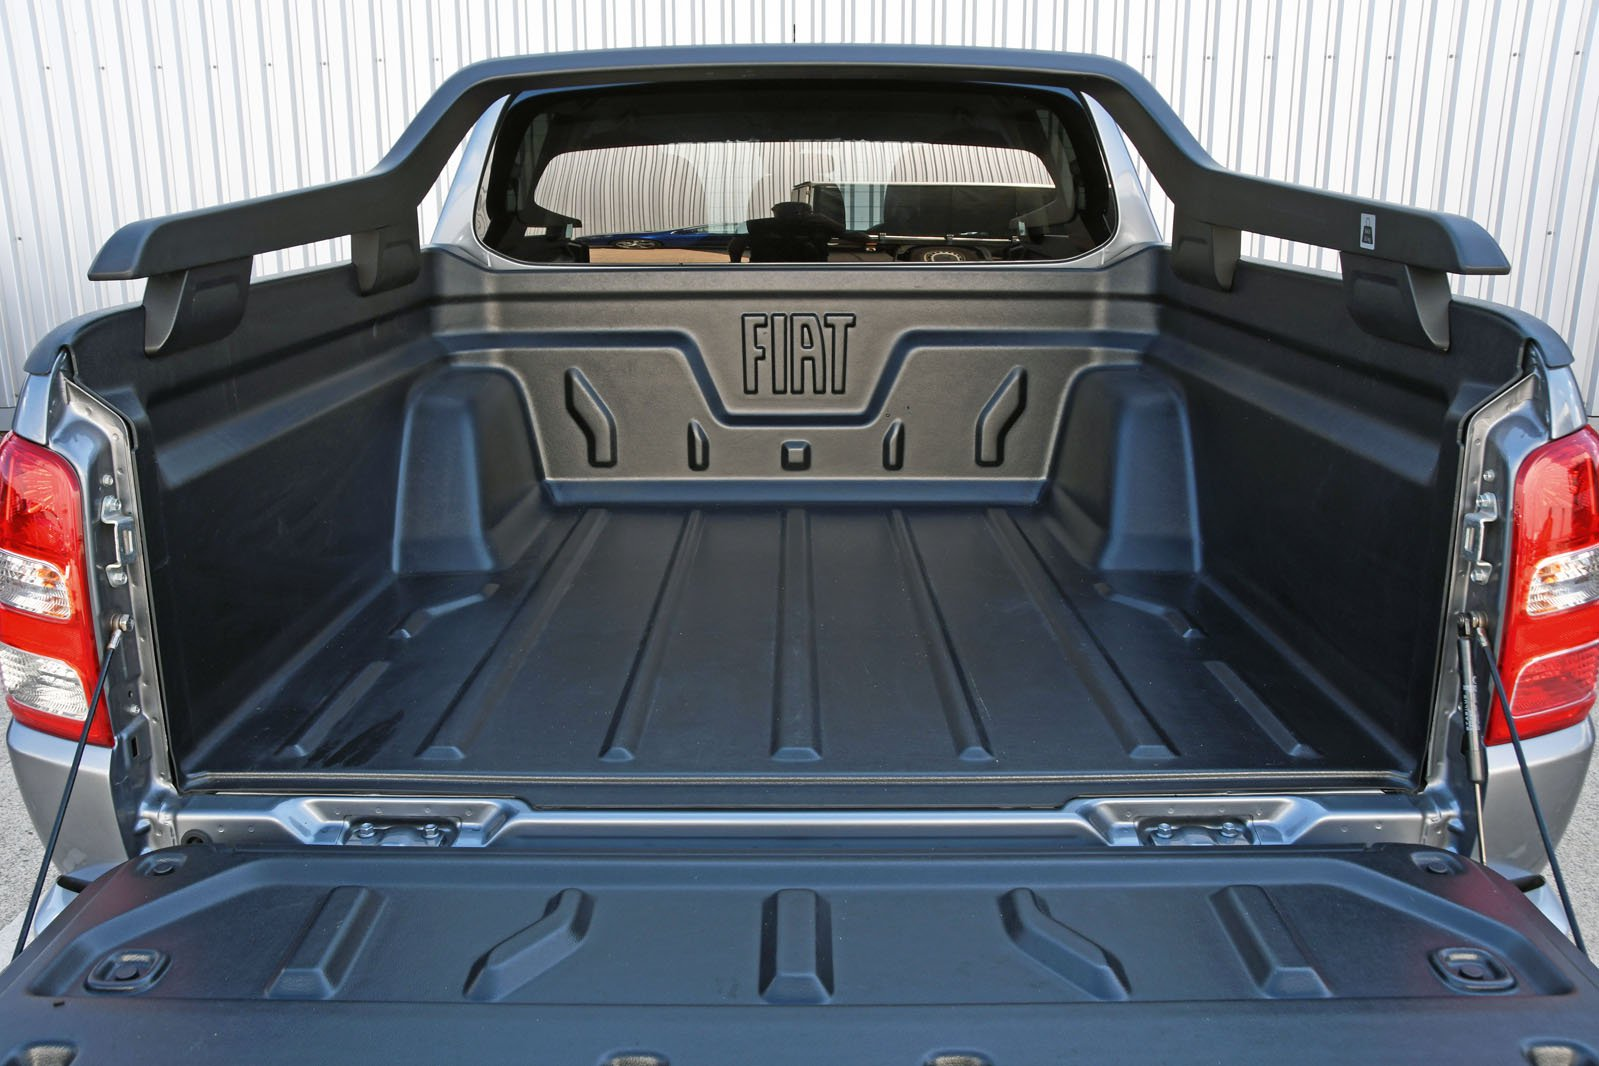 Fiat Fullback bed